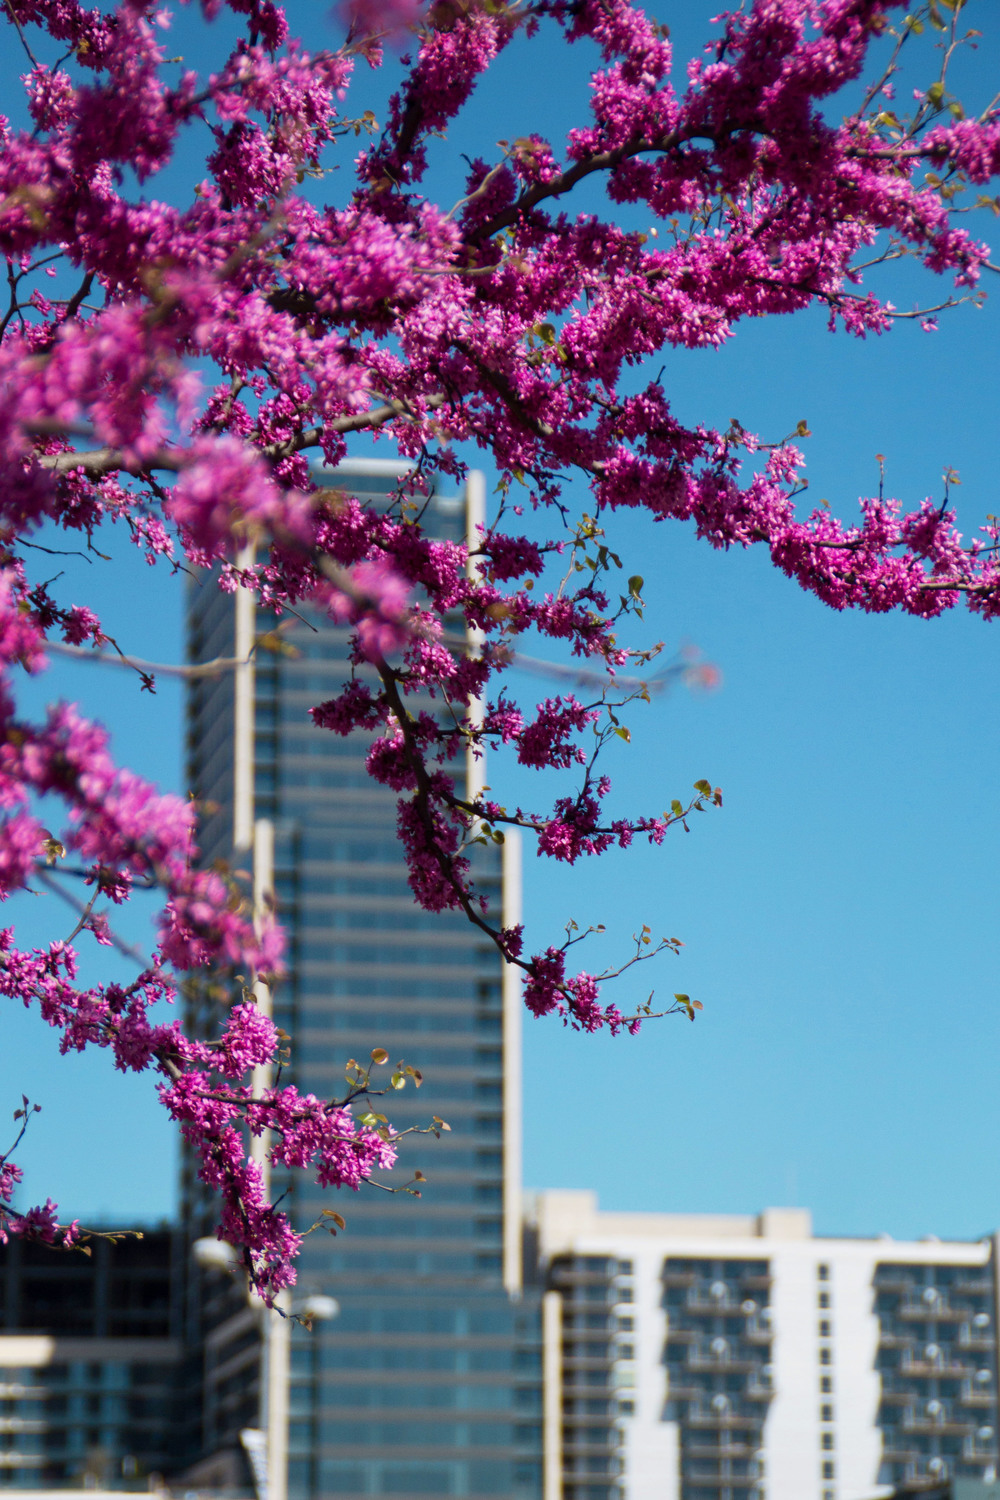 Flowers adorn the trees around the Long Center, framing the skyline with a pop of color in sharp contrast to the blue sky.